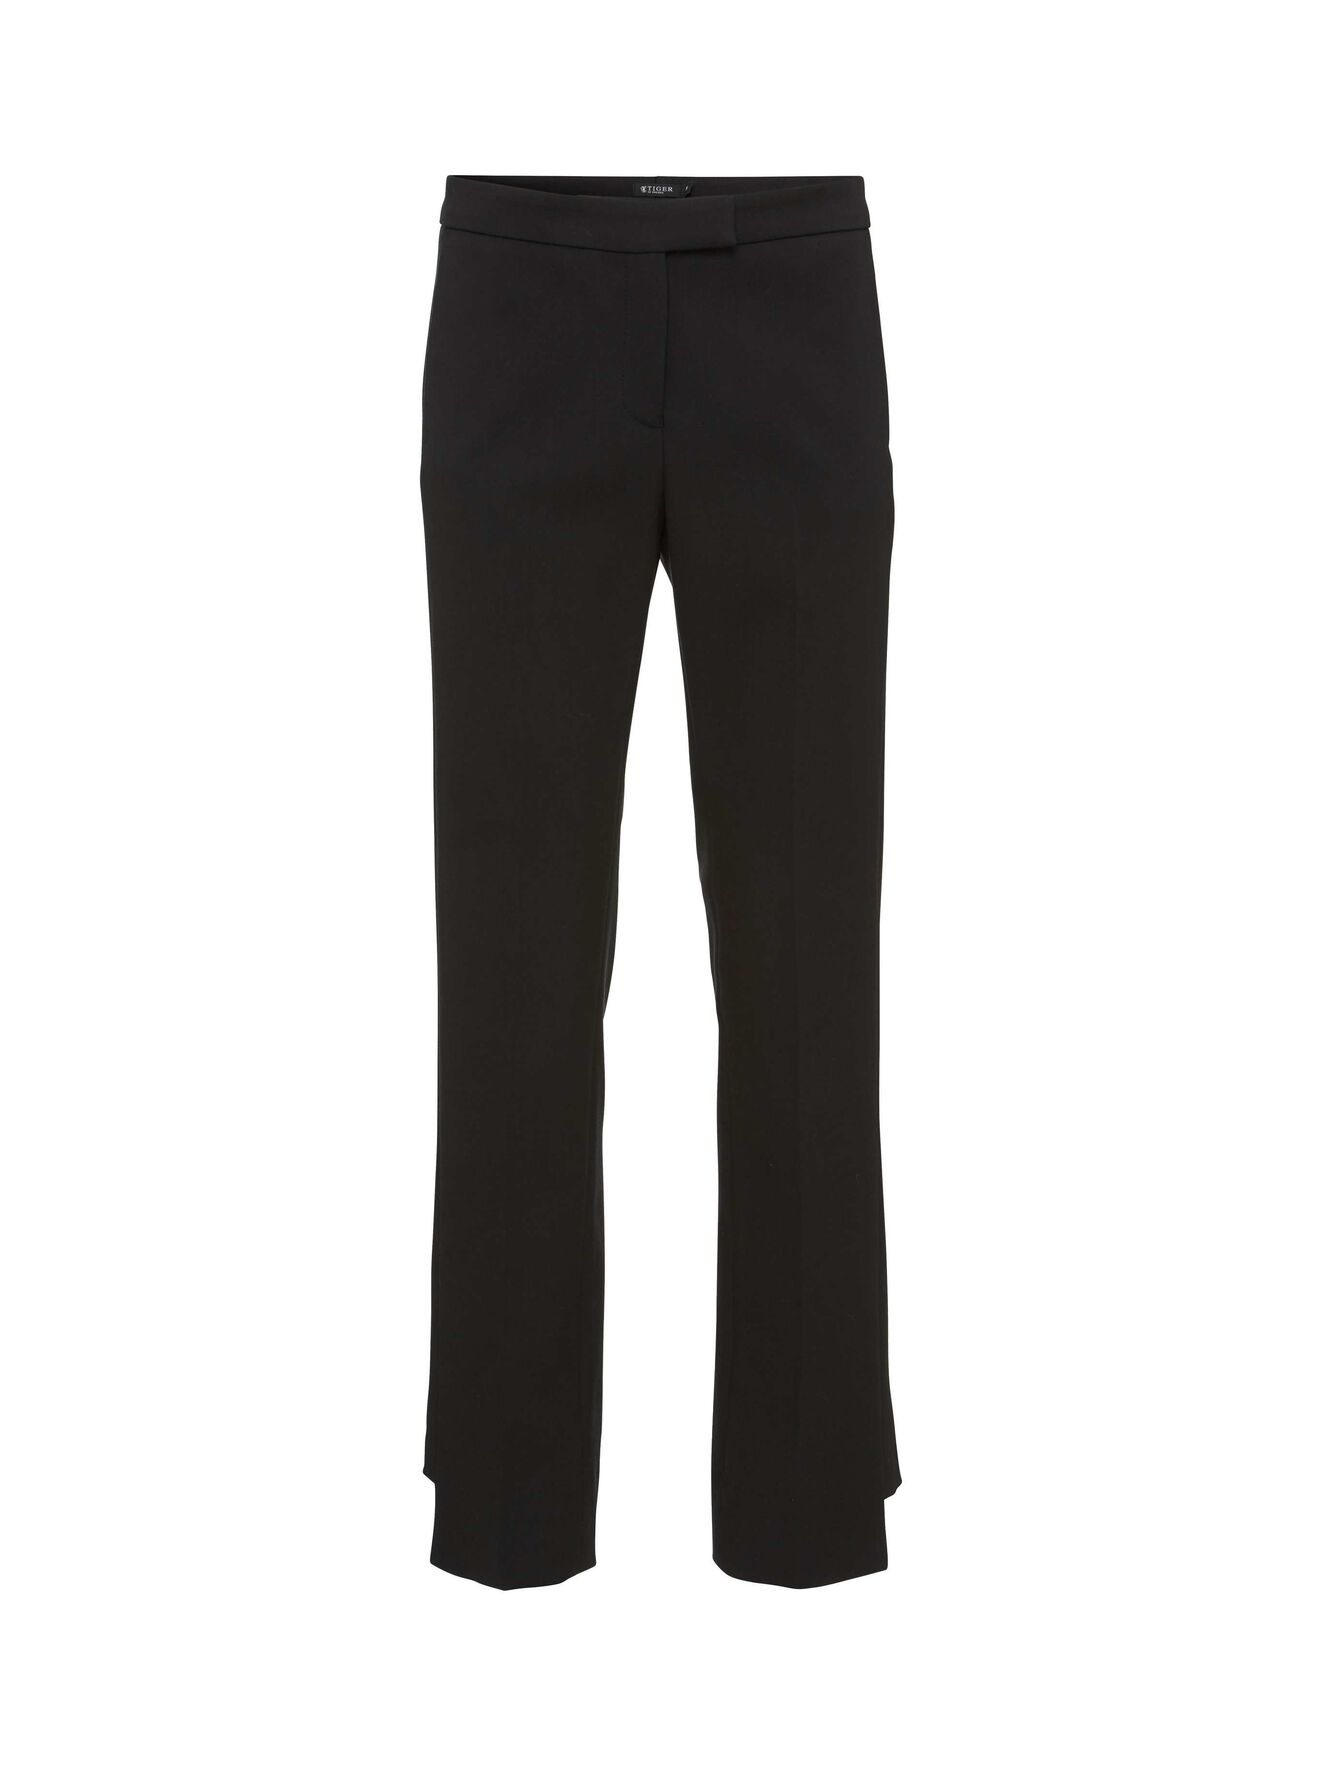 PANTALON MENTO in Midnight Black from Tiger of Sweden